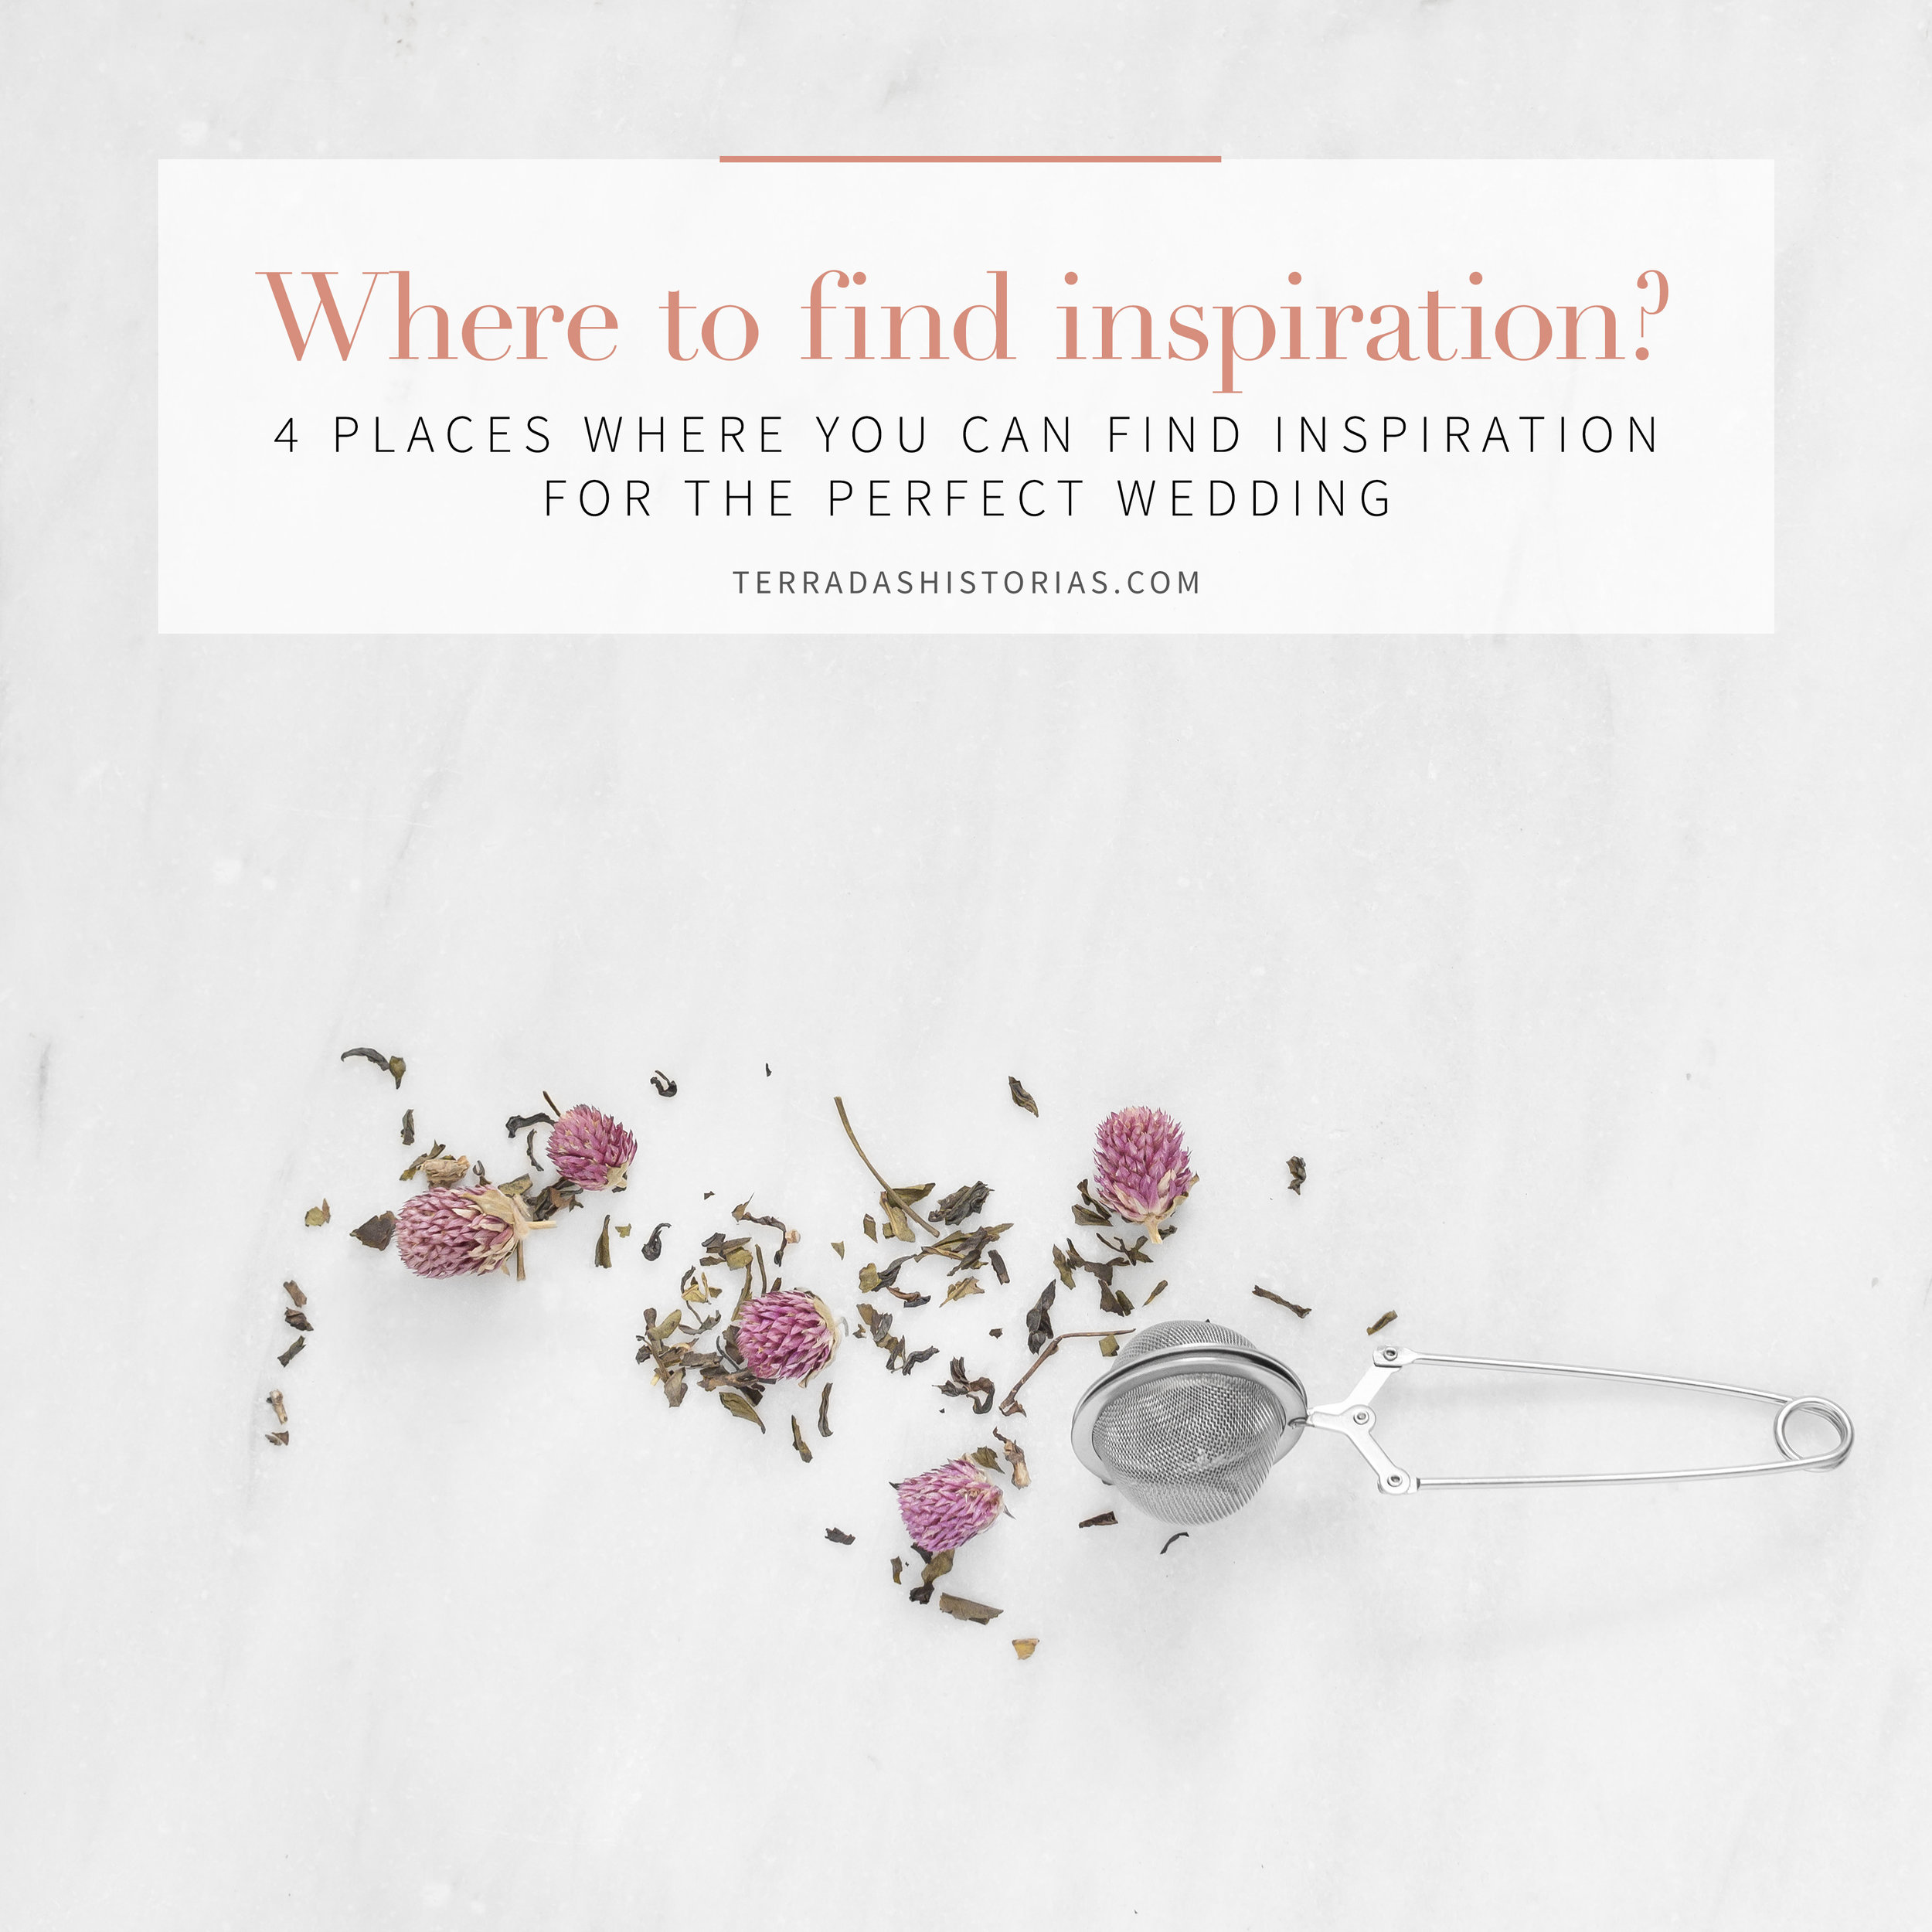 where-to-find-inspiration-for-your-wedding-tips-terra-fotografia-2.jpg